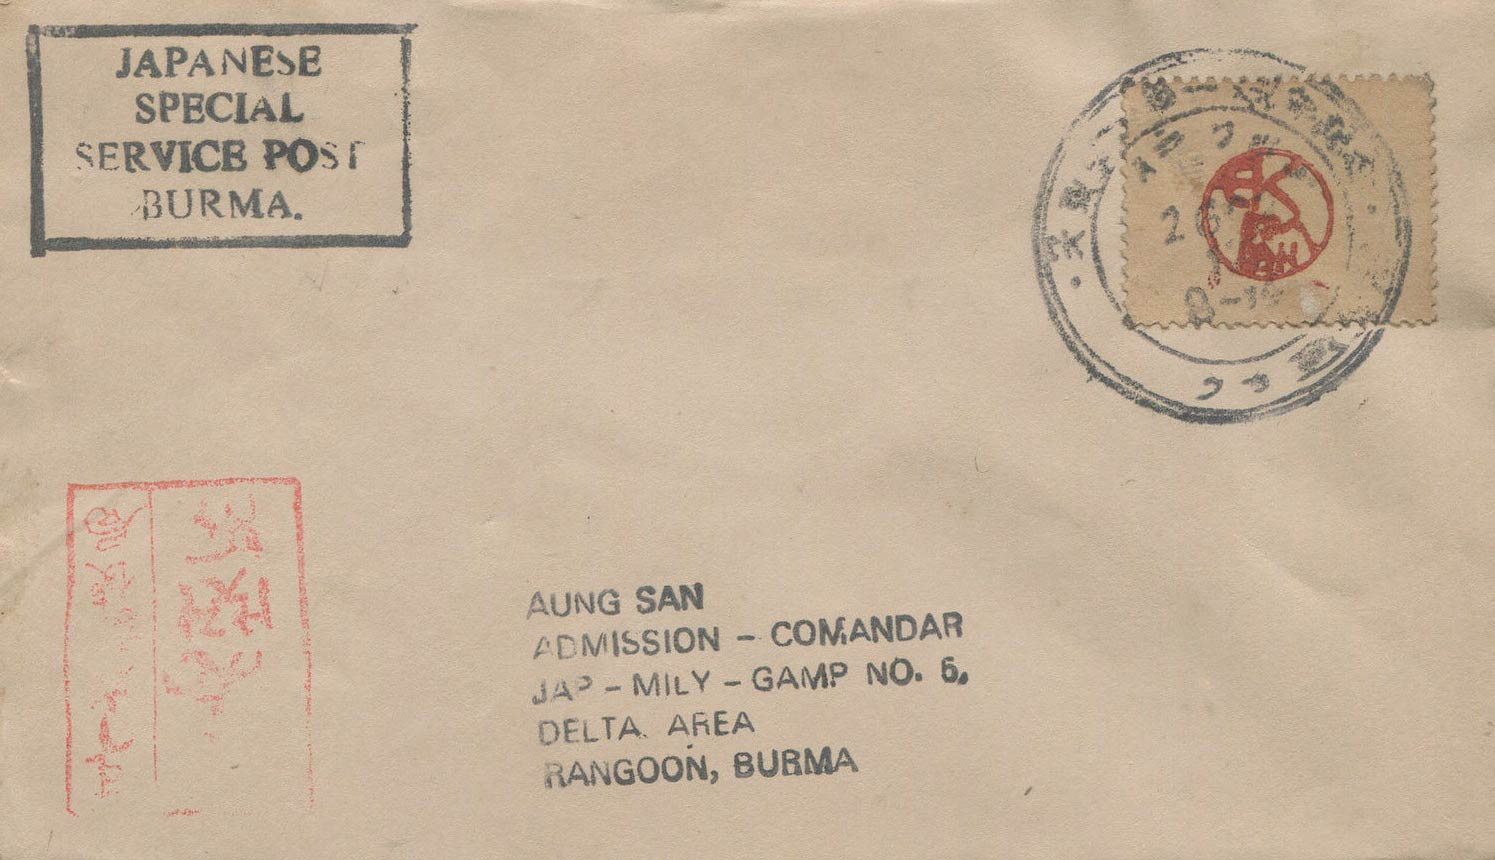 Burma_Japanese-Special-Service-Post_Cover_Forgery9